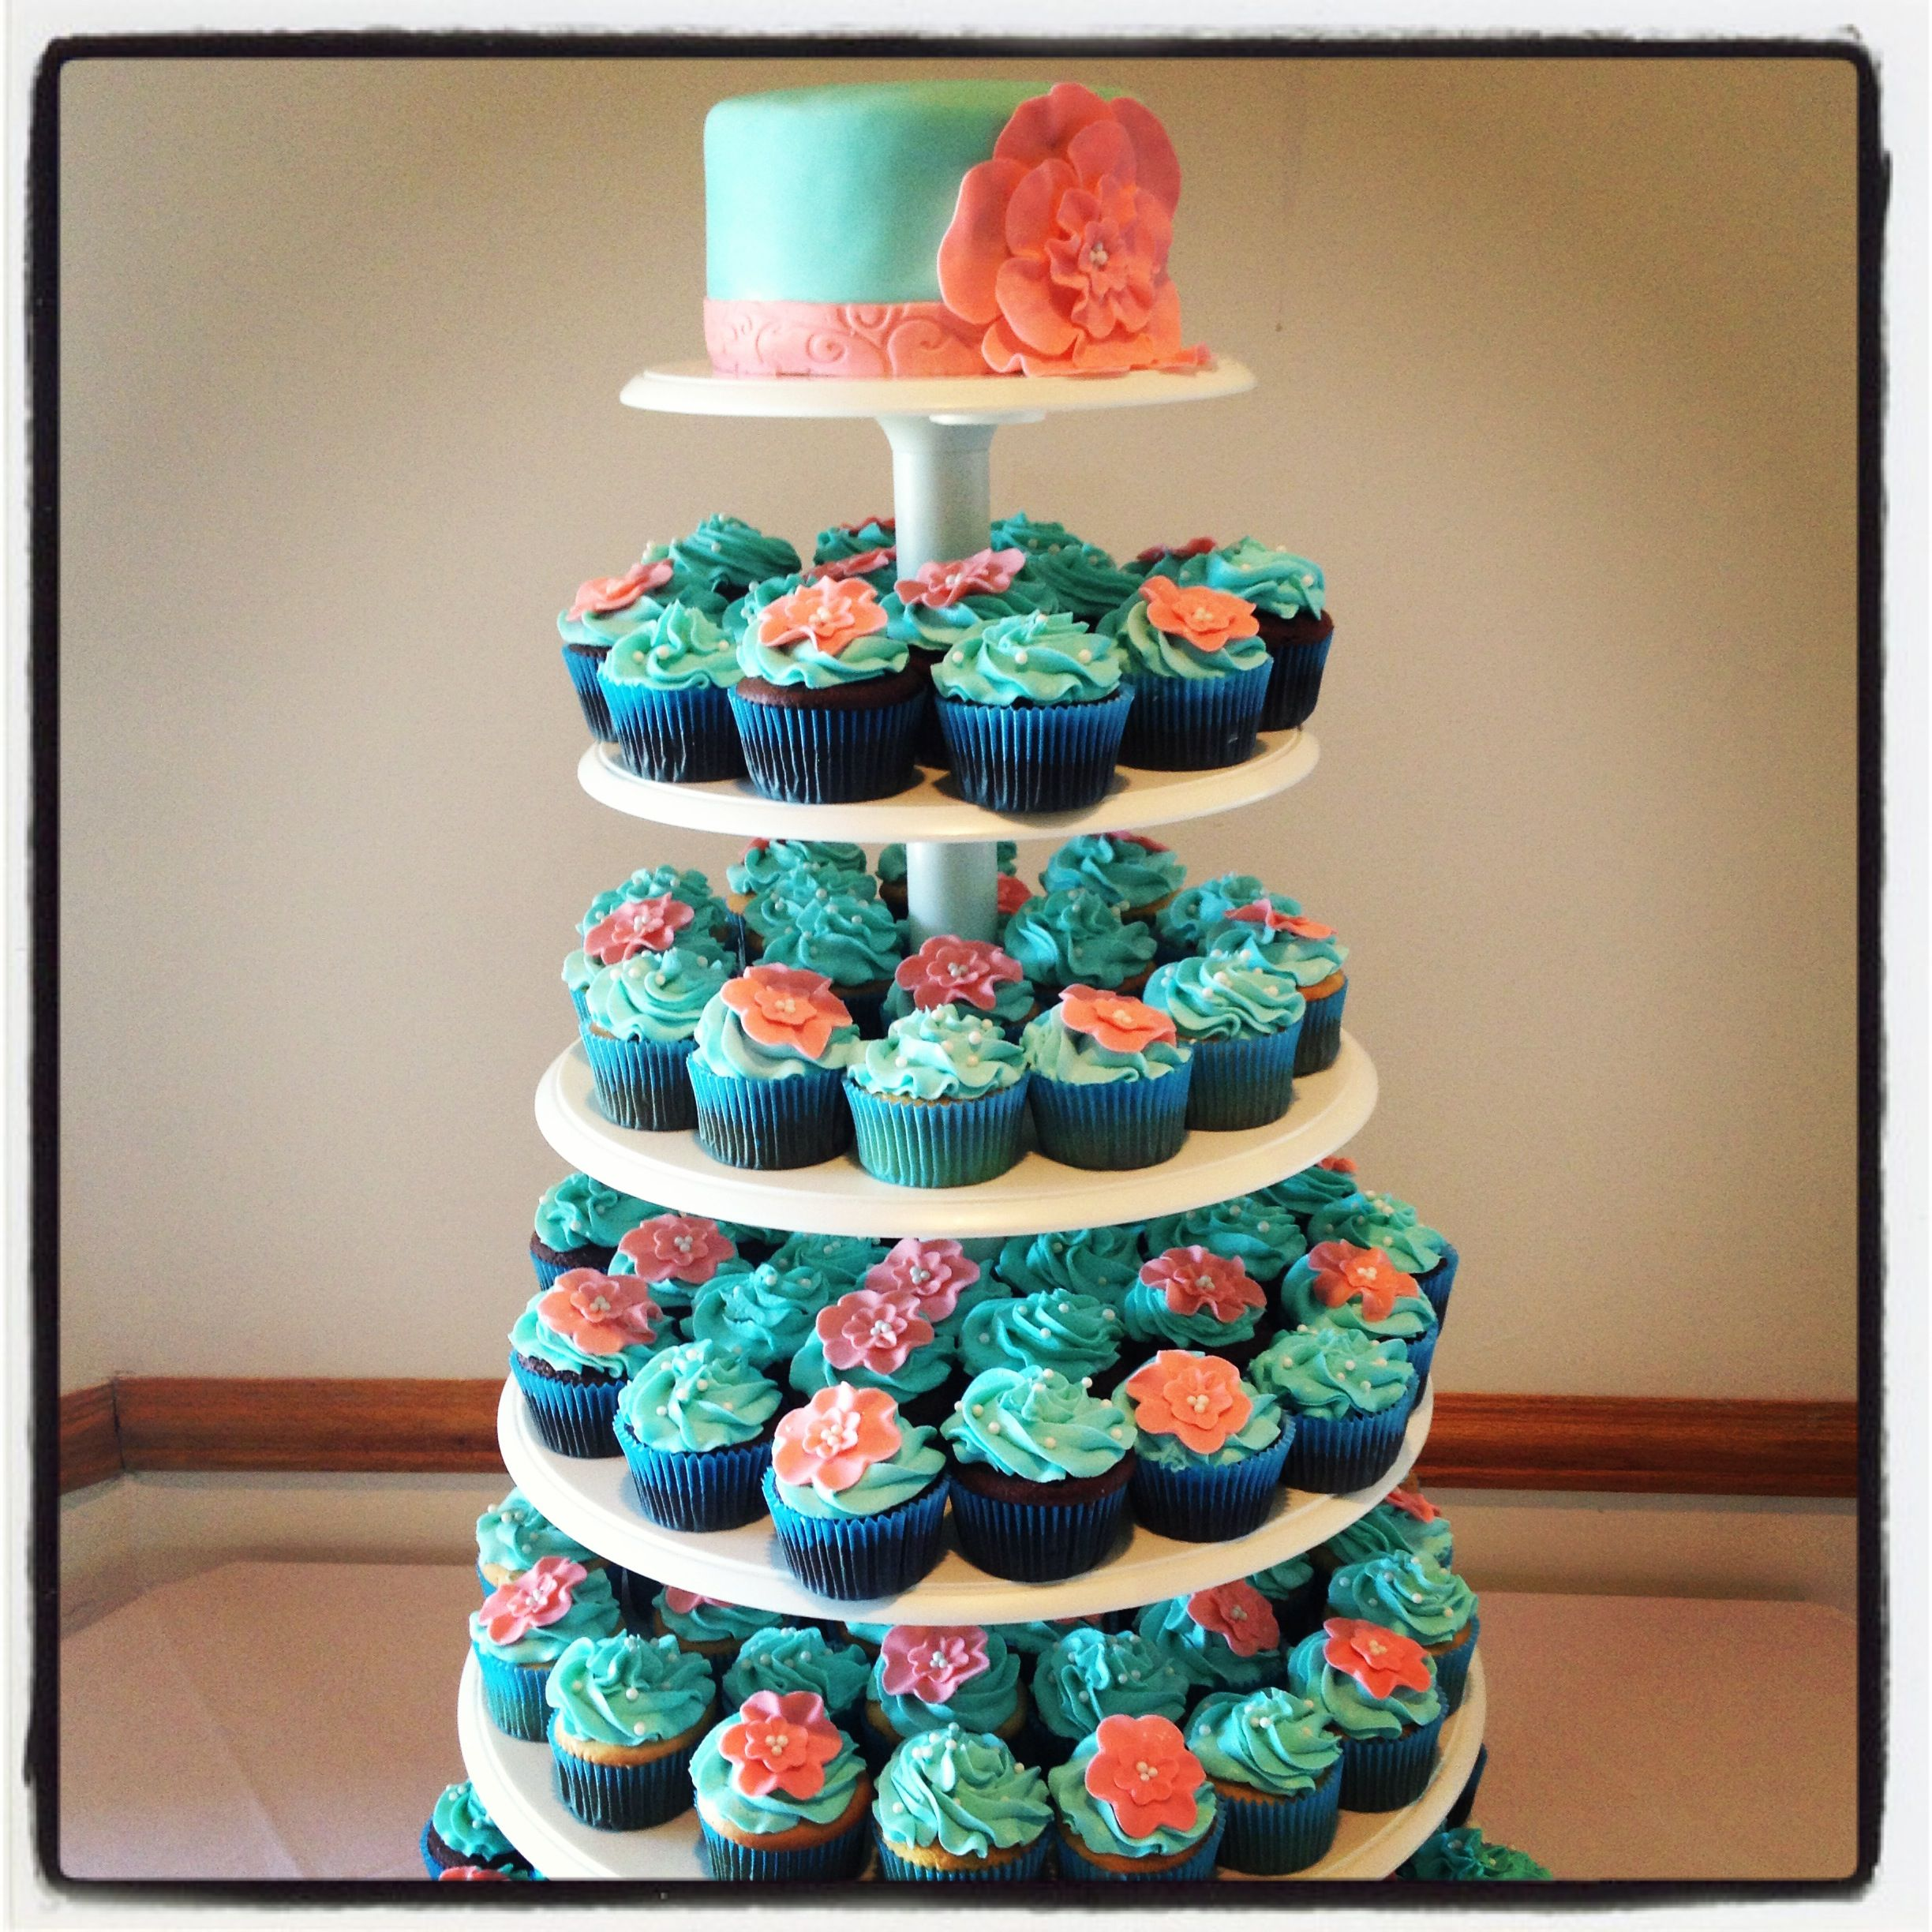 Teal & Coral Wedding Cupcake Tower...love The Idea Of